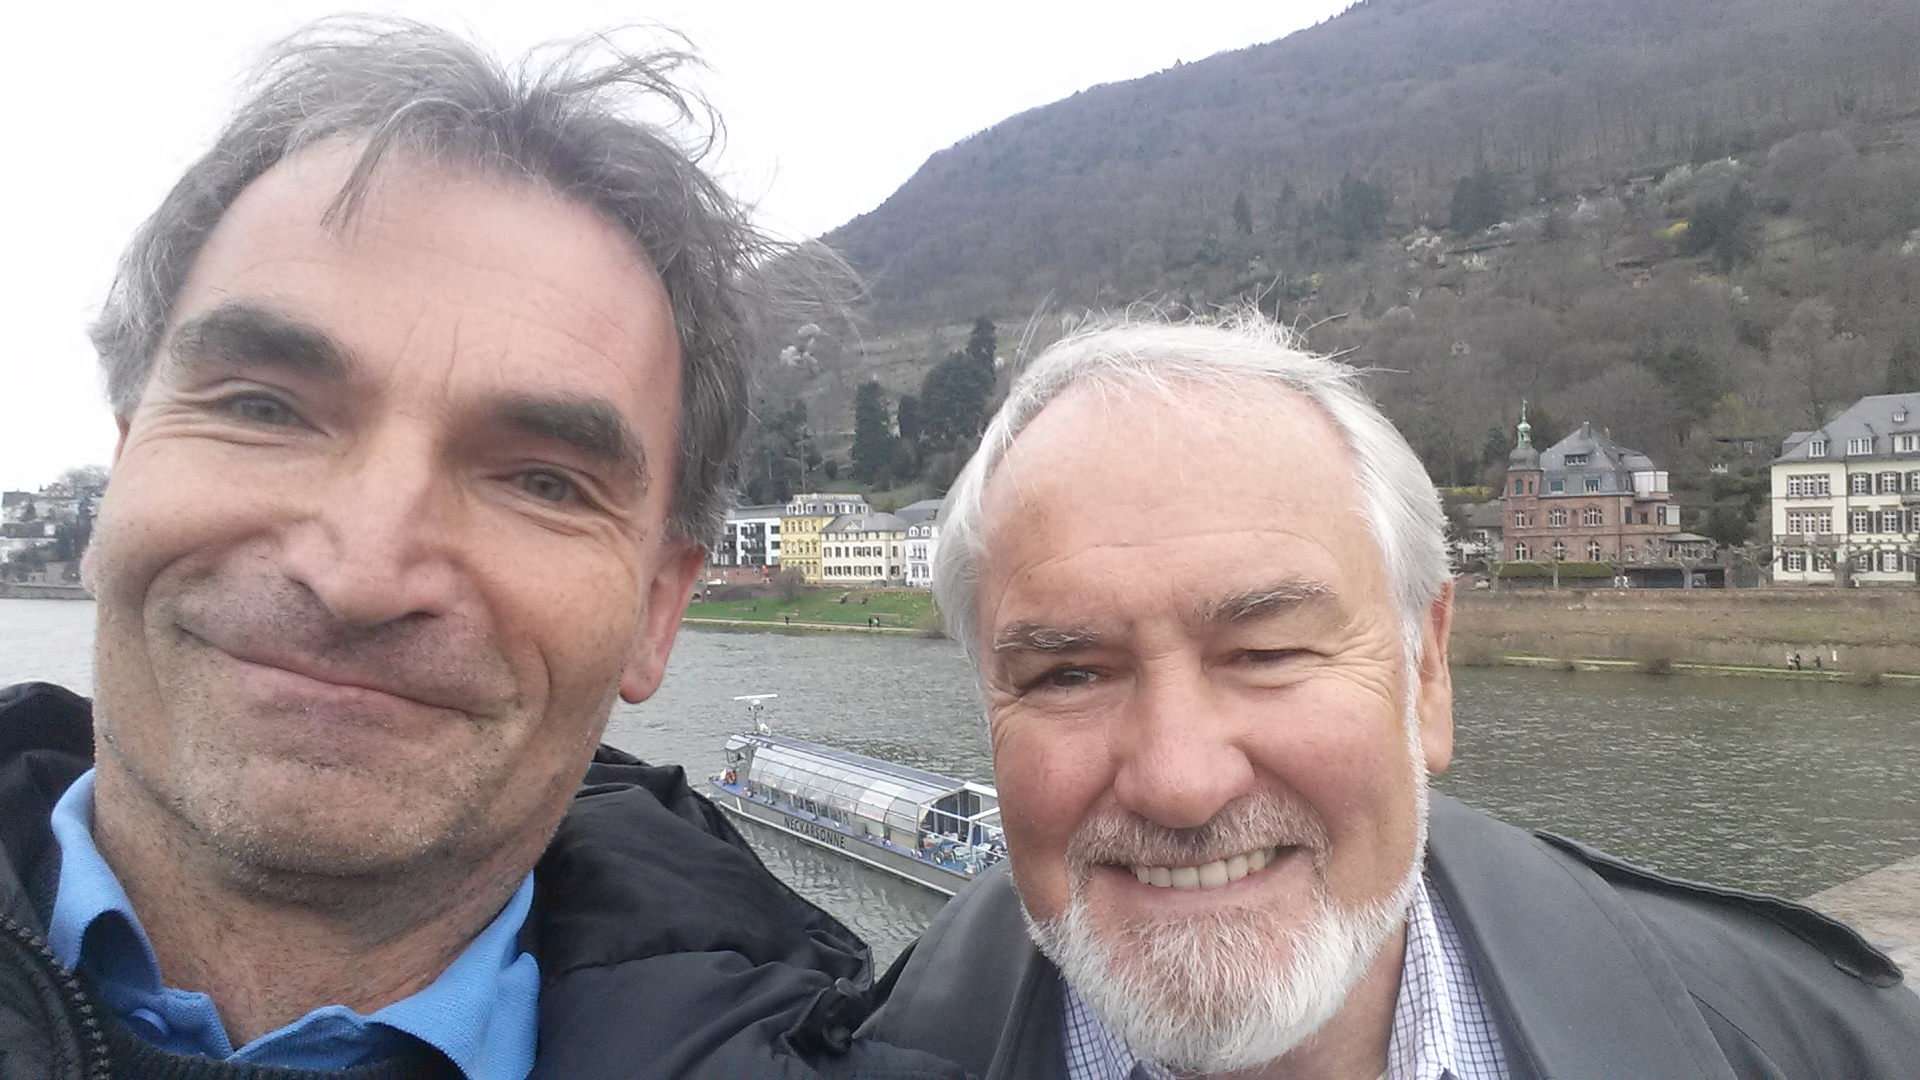 Dr. Ditzinger (left) and Dr. Kelso (right)  at Philosophenweg